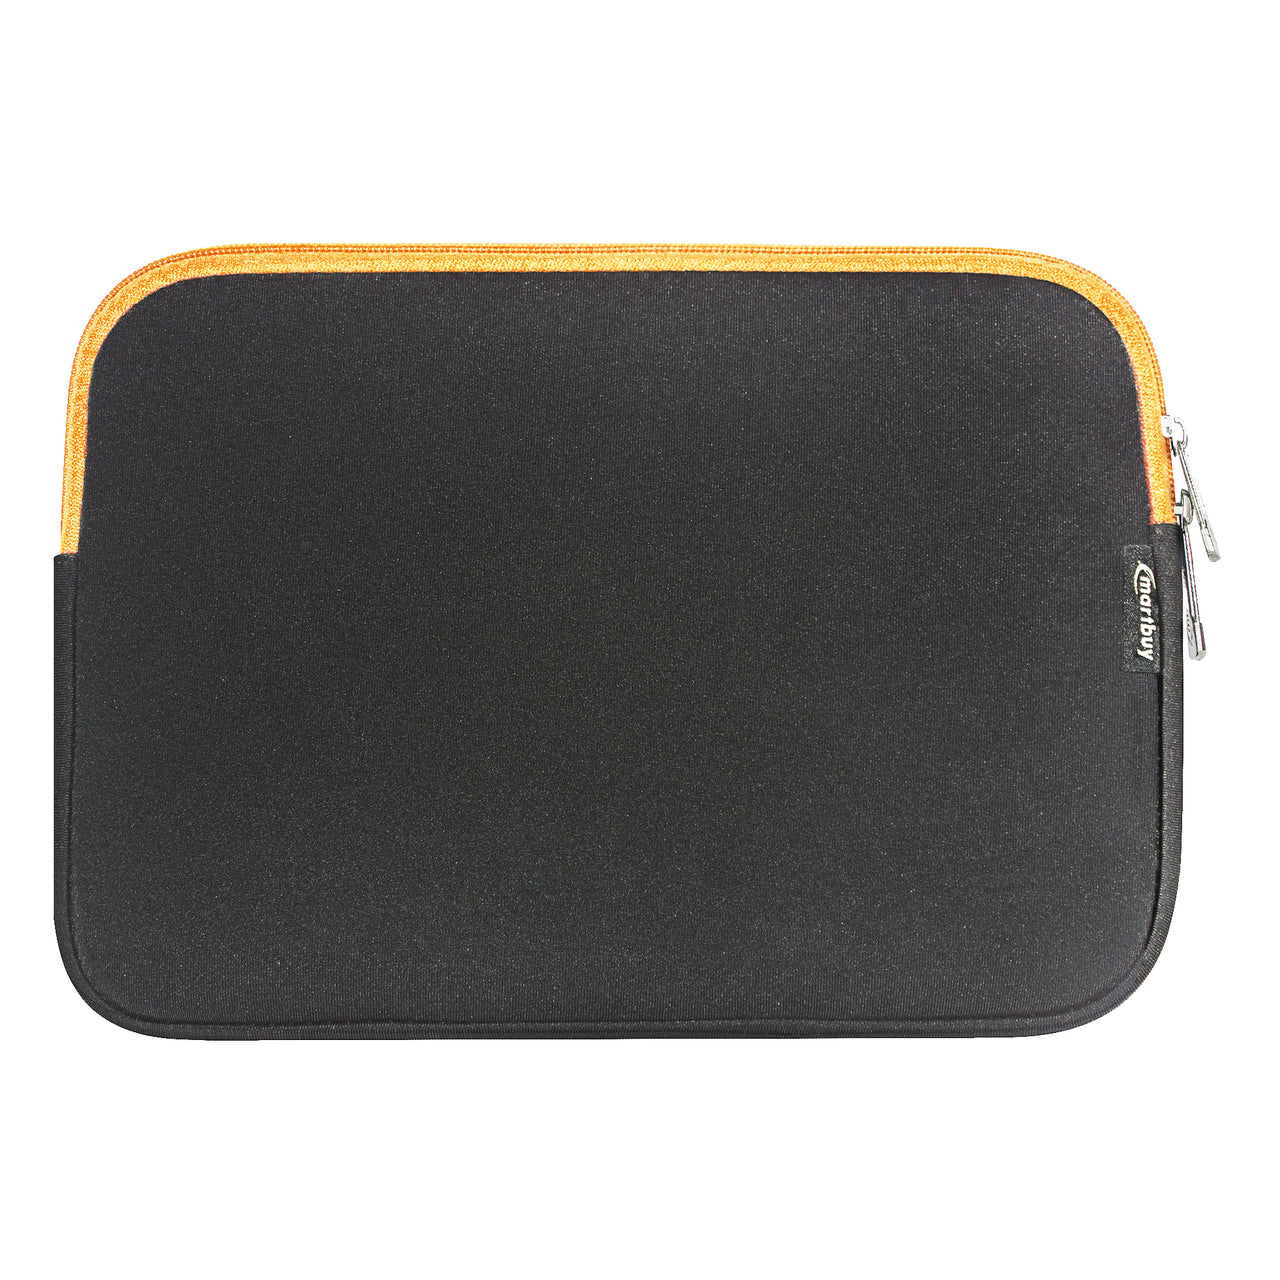 Universal Neoprene Case - Grey Orange